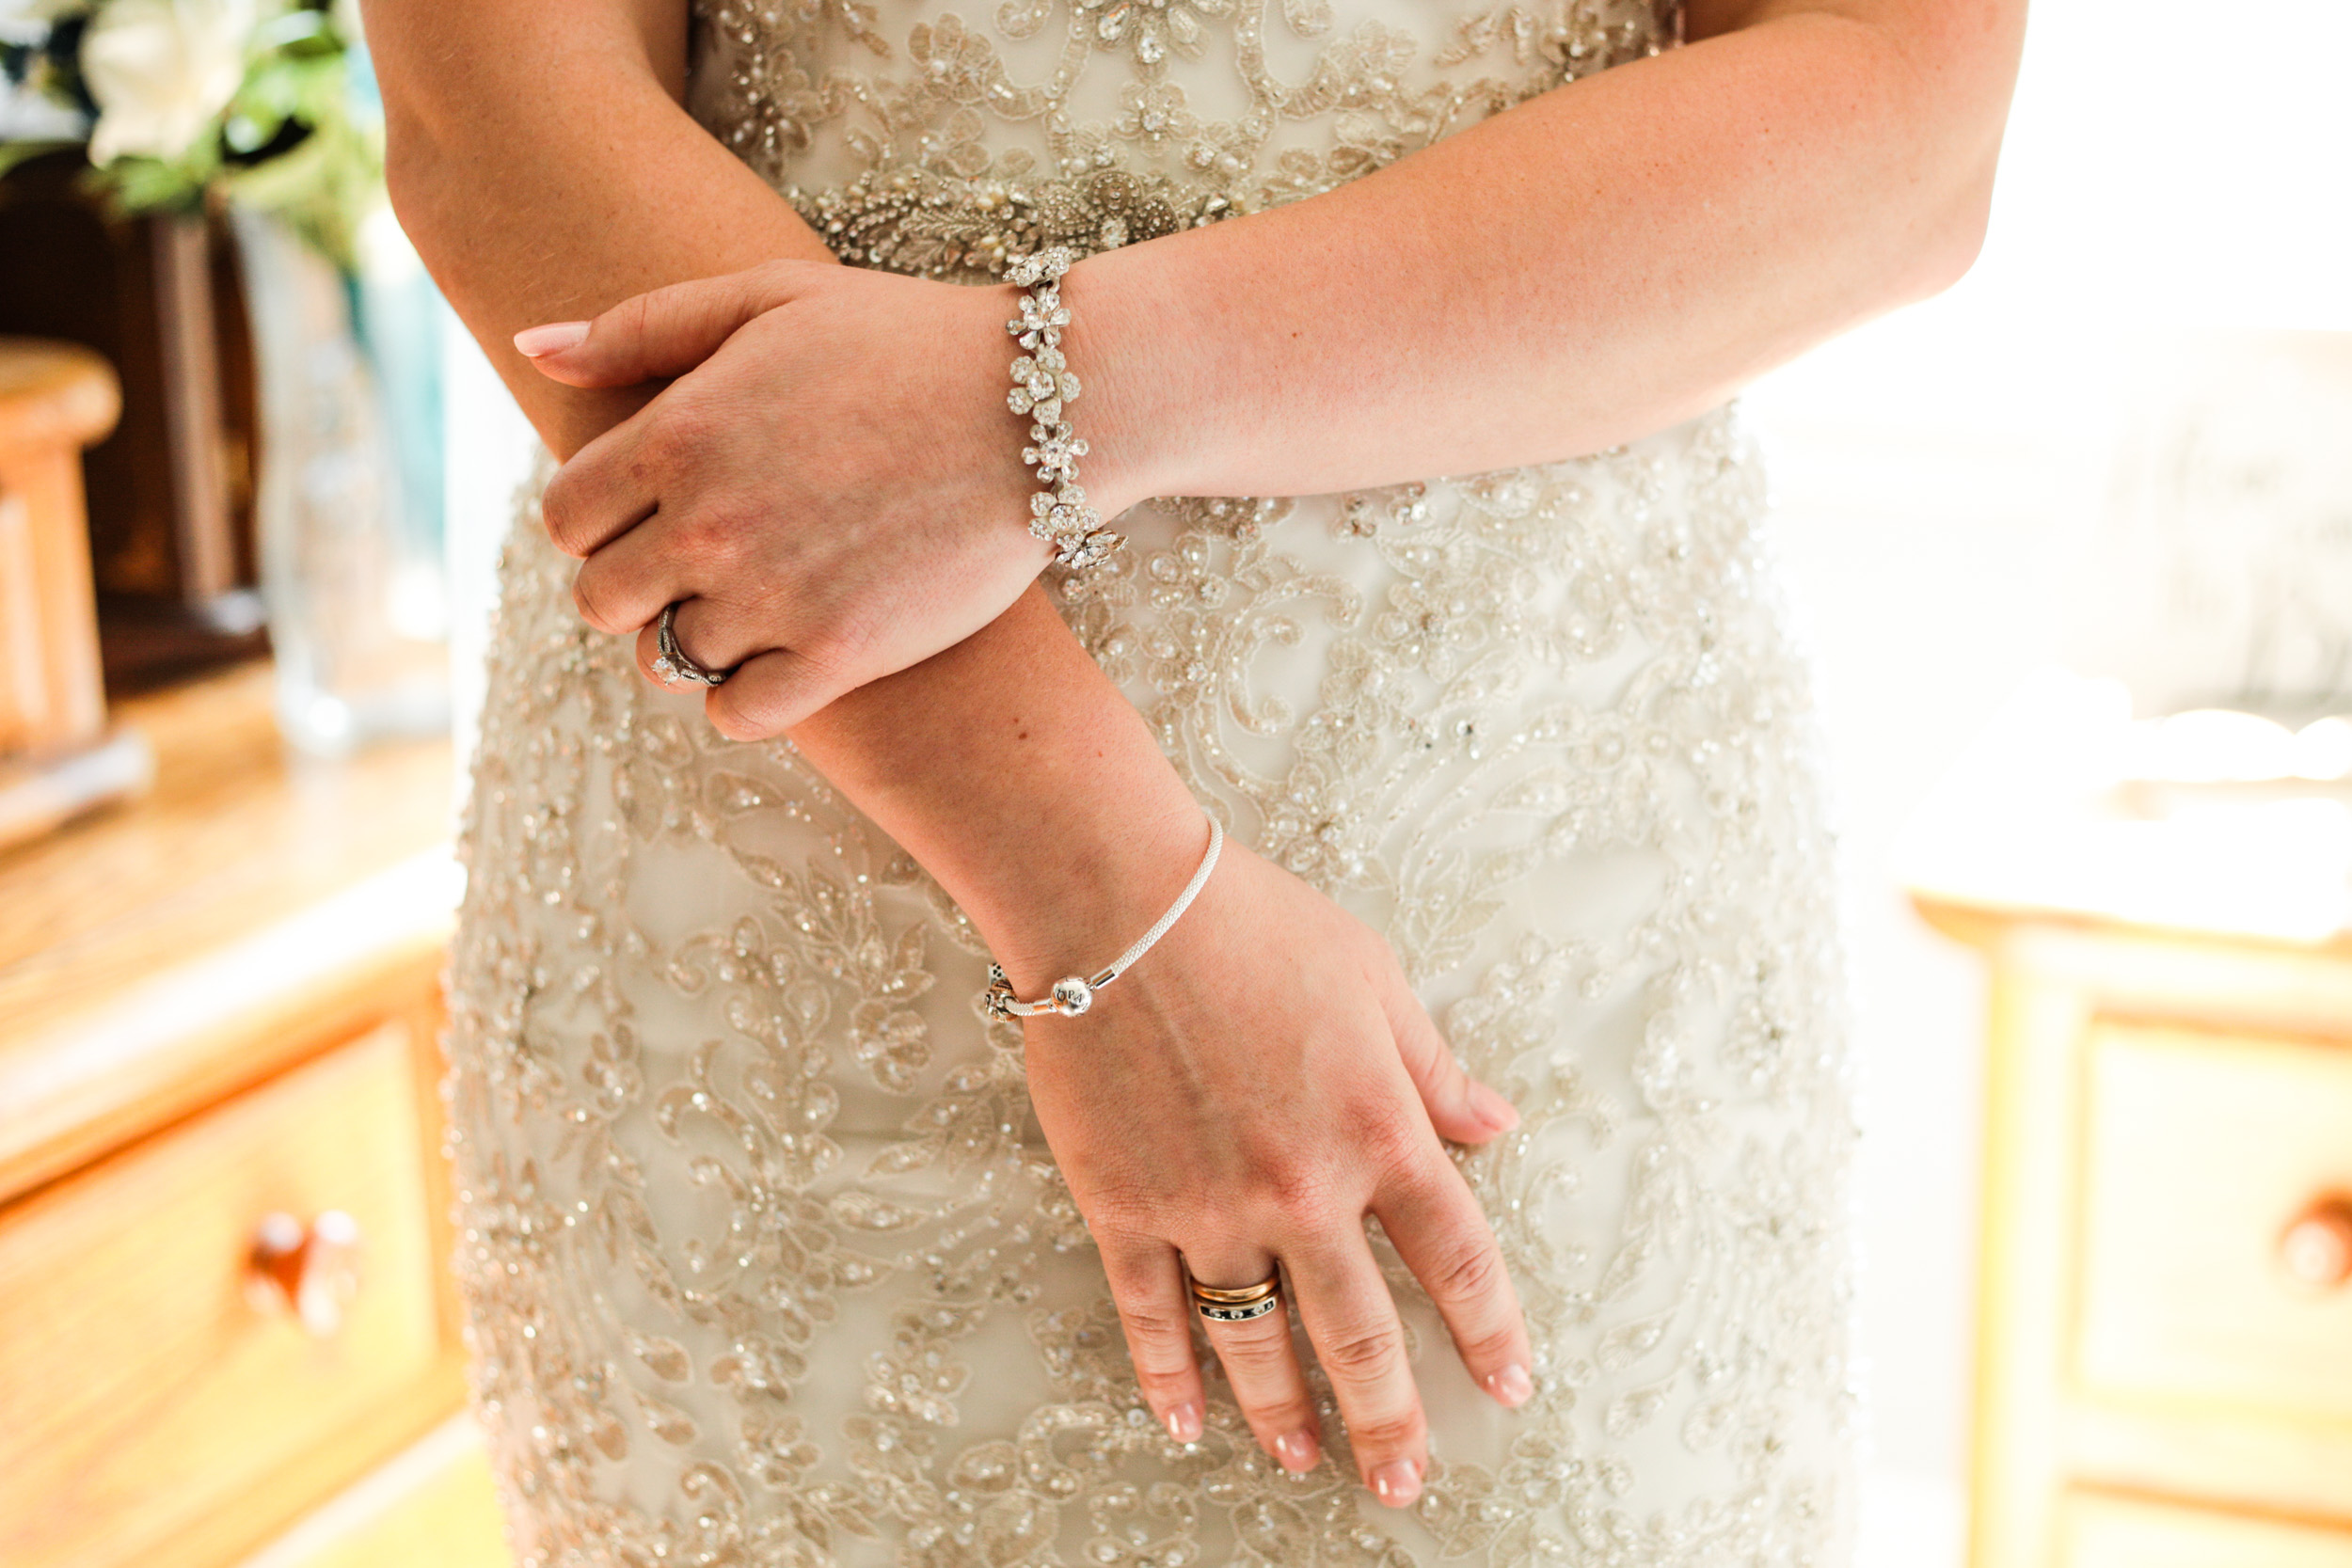 Winstanley Baptist Church Wedding and Four Points by Sheraton Reception Photos by St Louis Wedding Photographers and Videographers Oldani Photography 32.jpg